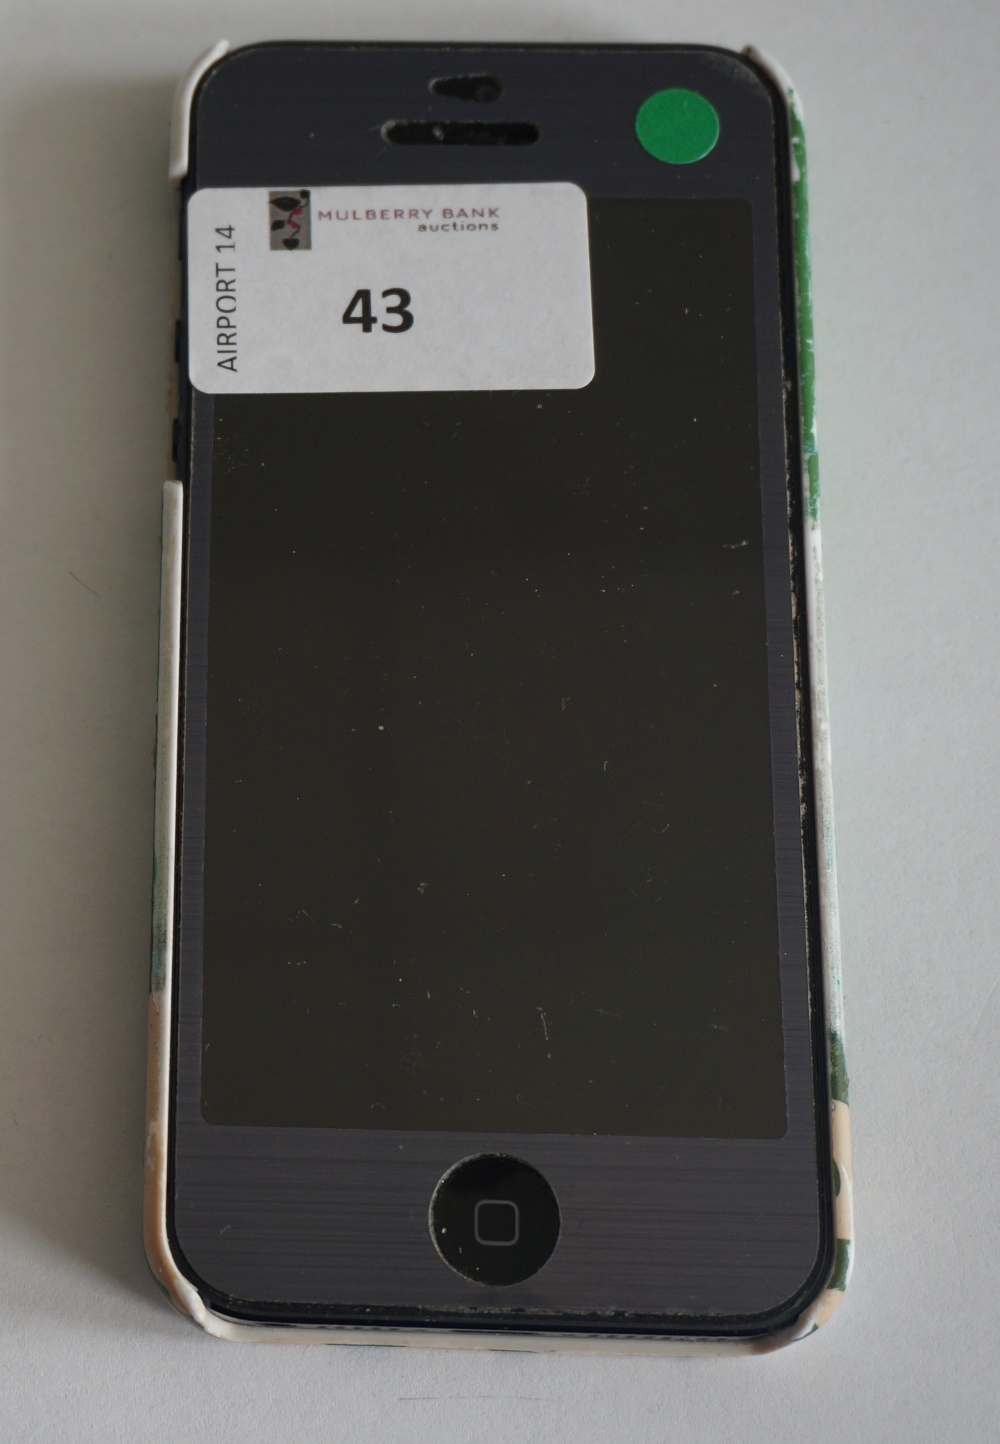 apple iphone 5 64gb model a1429 imei 013729002952827. Black Bedroom Furniture Sets. Home Design Ideas